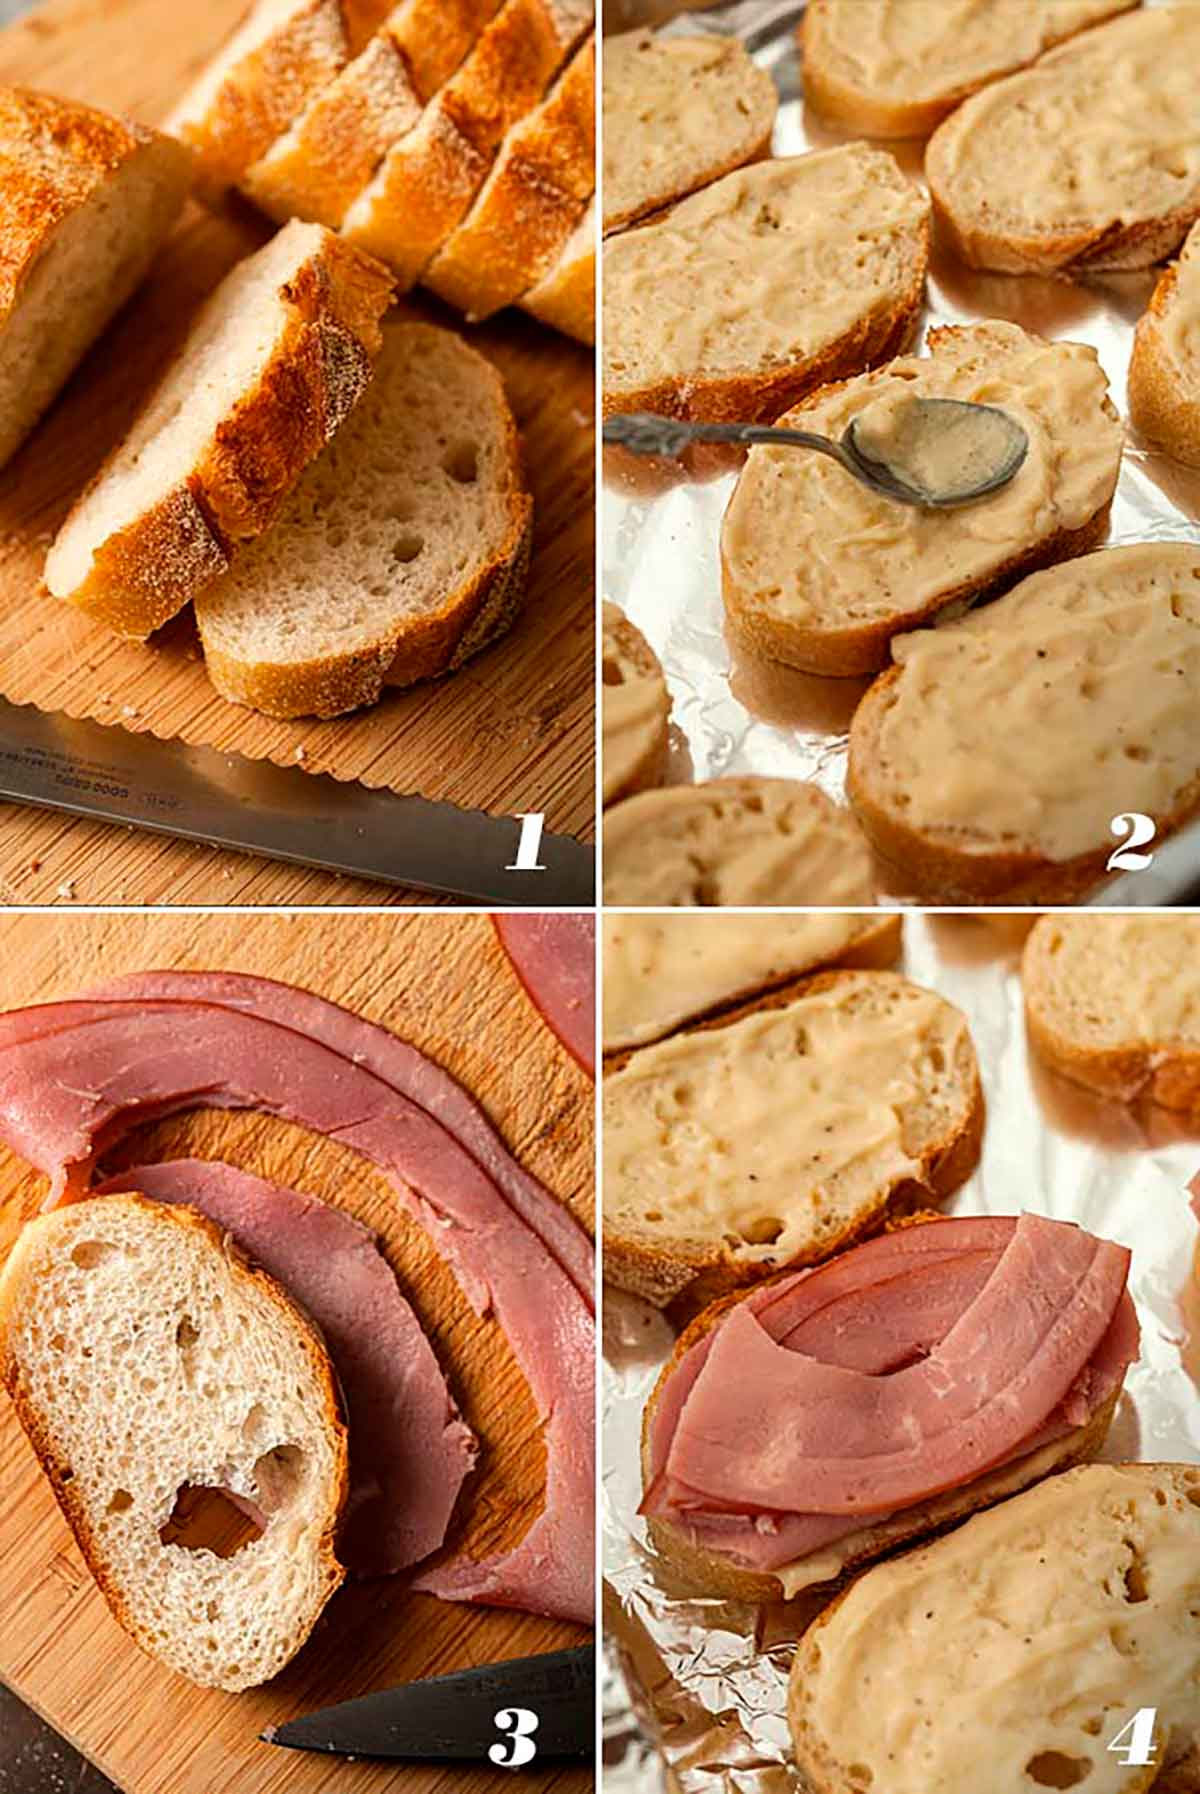 A collage of 4 numbered images showing how to slice bread, smear with sauce, slice ham and place on bread.